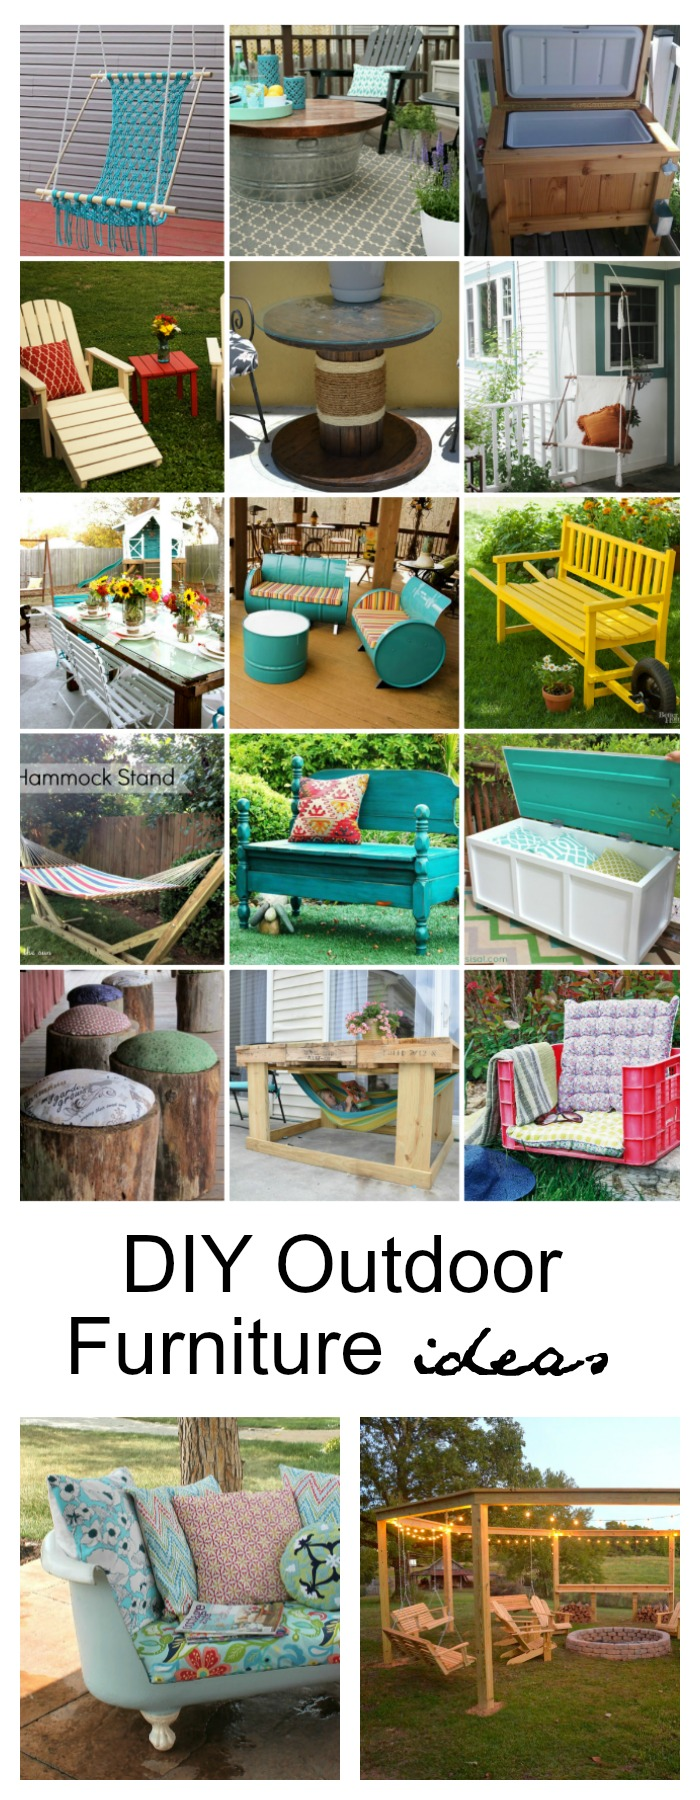 Homemade outdoor furniture ideas - Diy Outdoor Furniture Ideas Pin Jpg